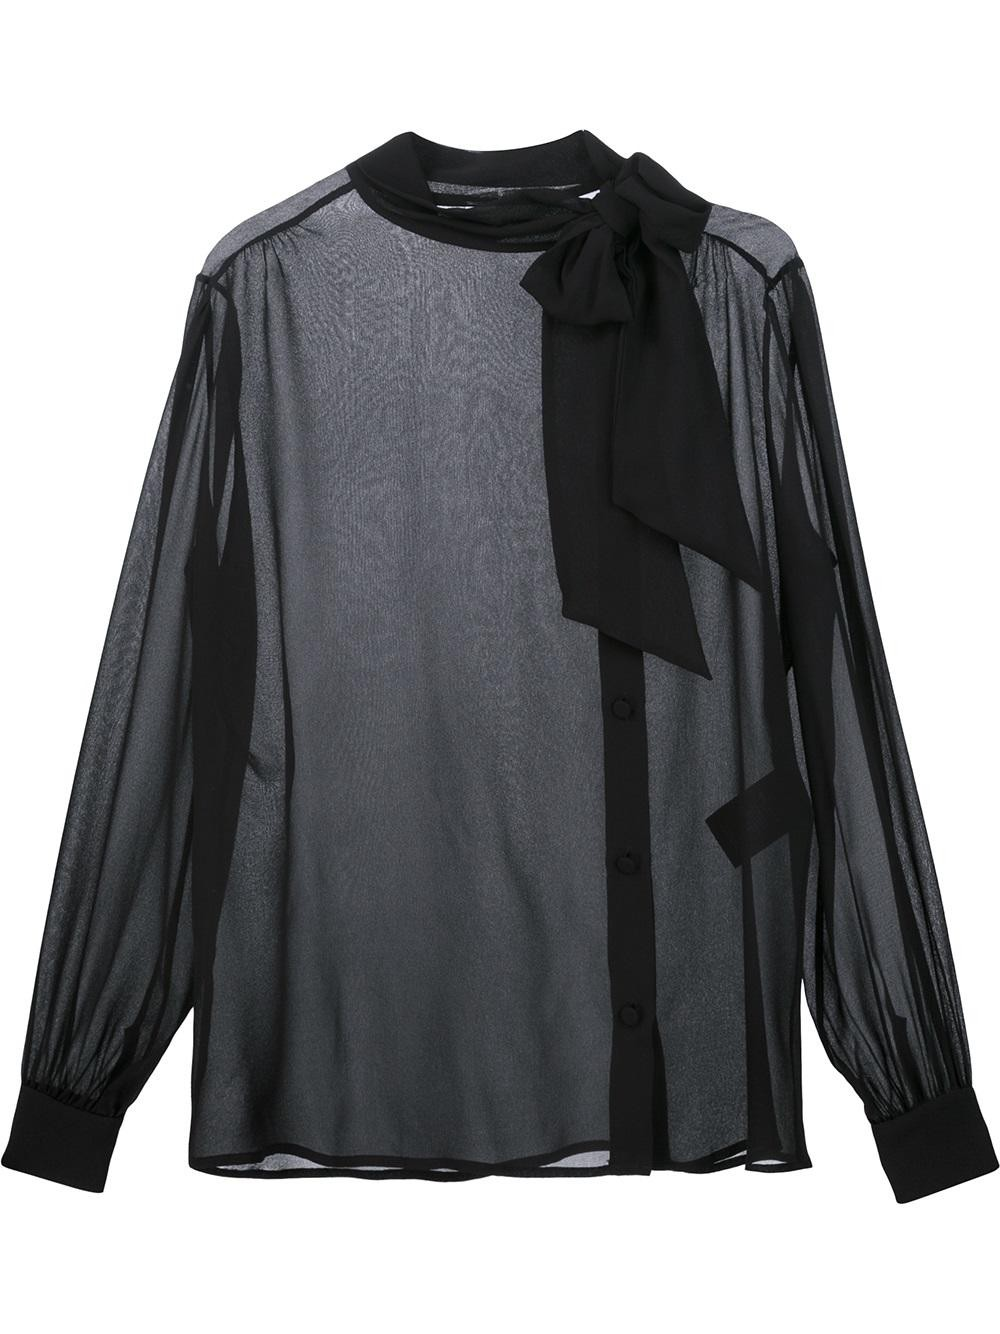 pussybow sheer blouse